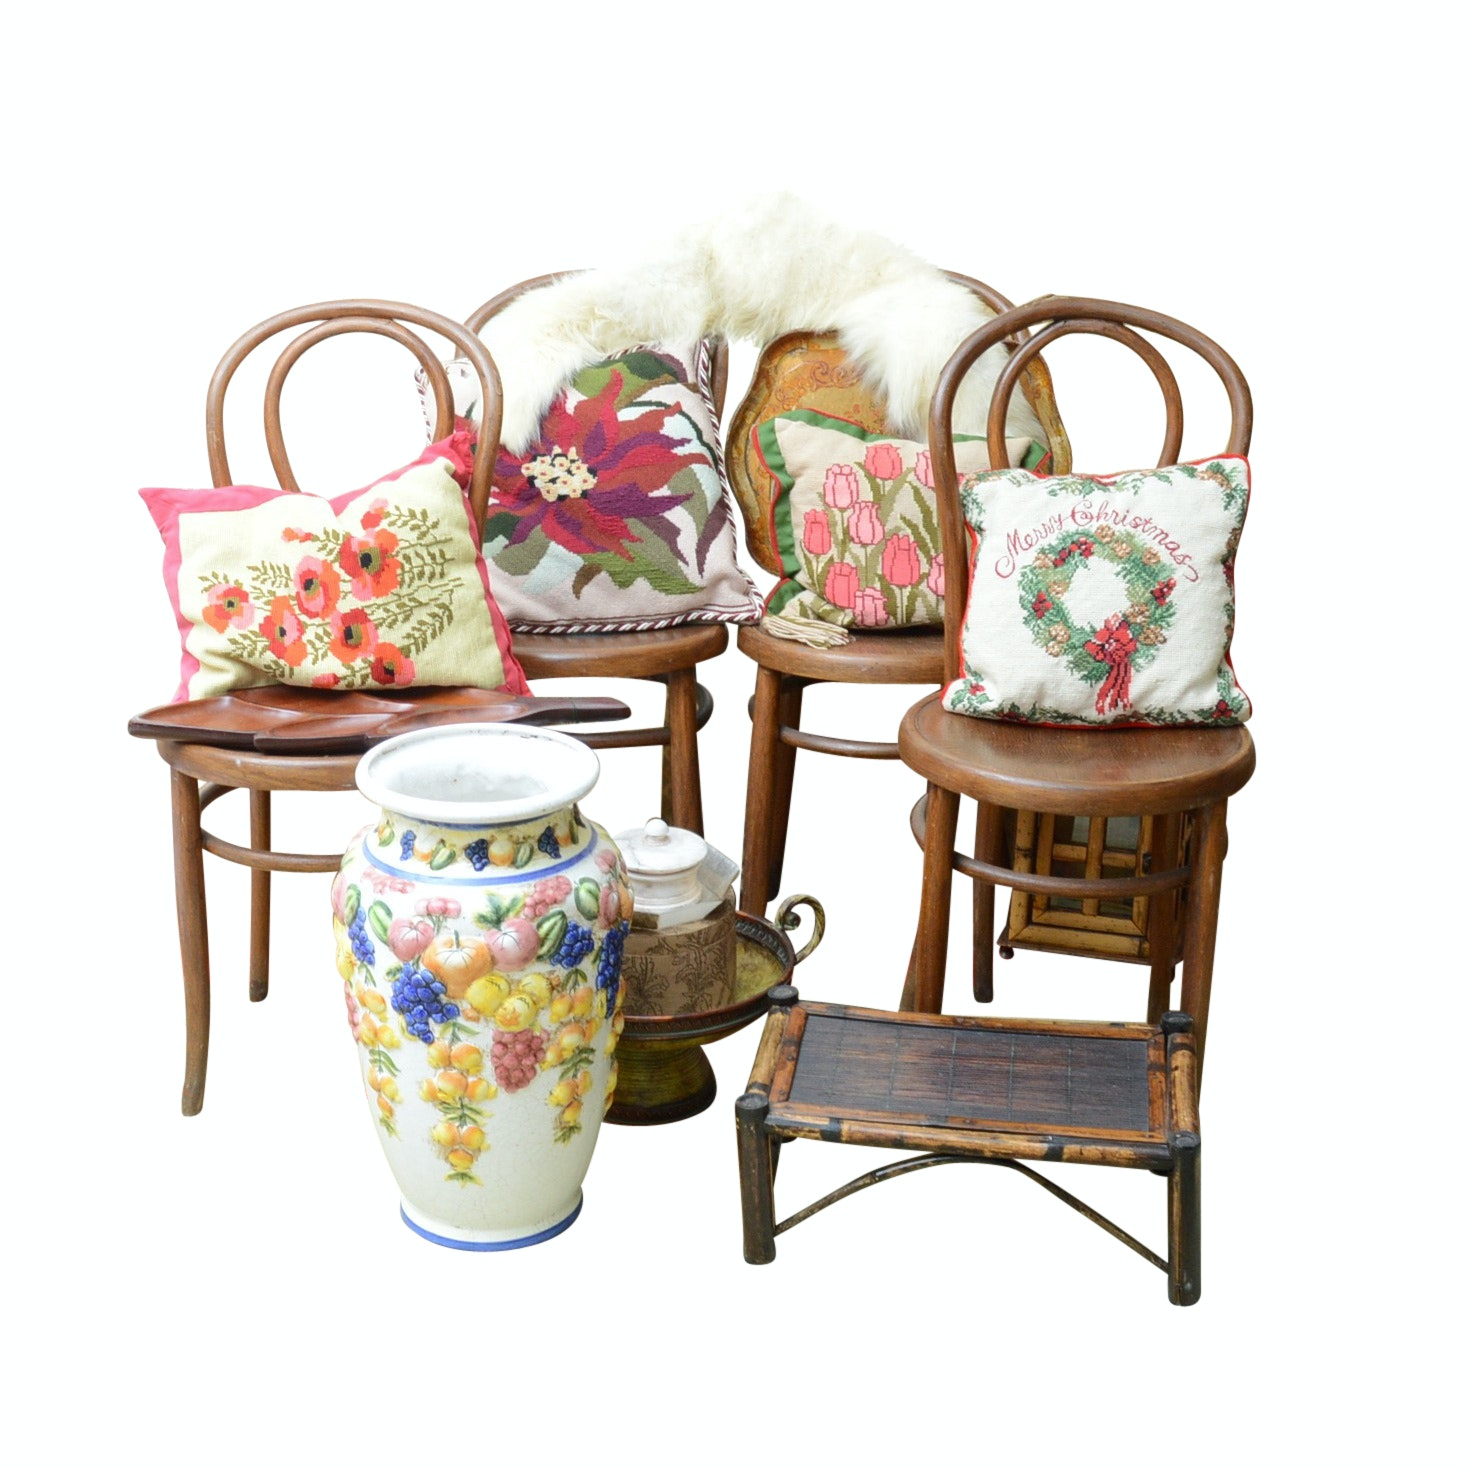 Pick Up Only Chairs and Home Decor Lot